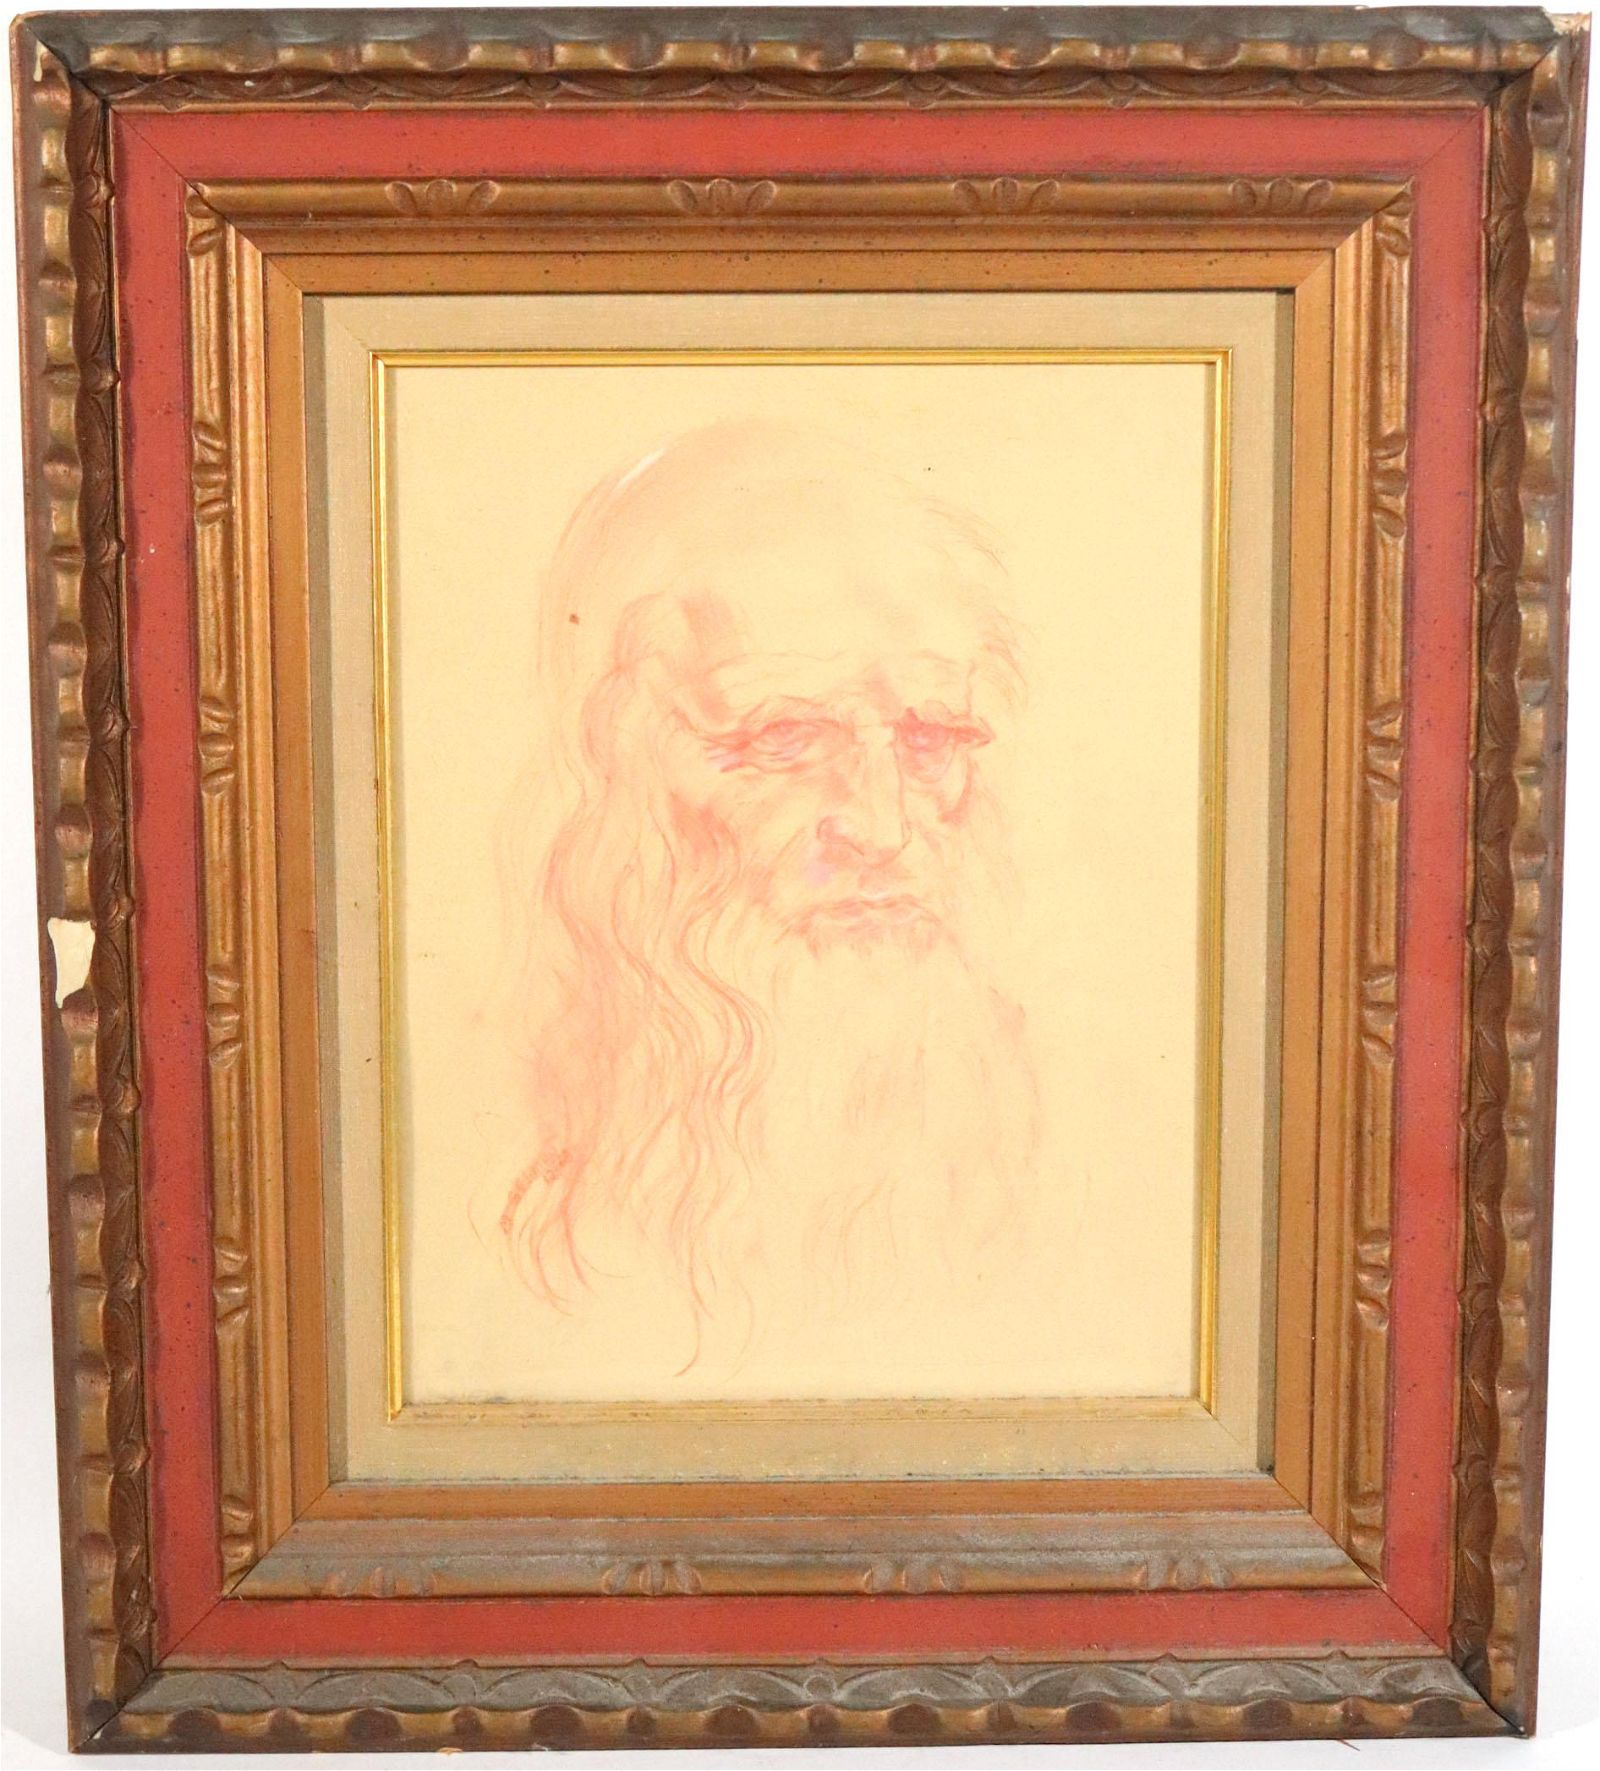 M. Gelman, Red Pencil Drawing of a Bearded Man